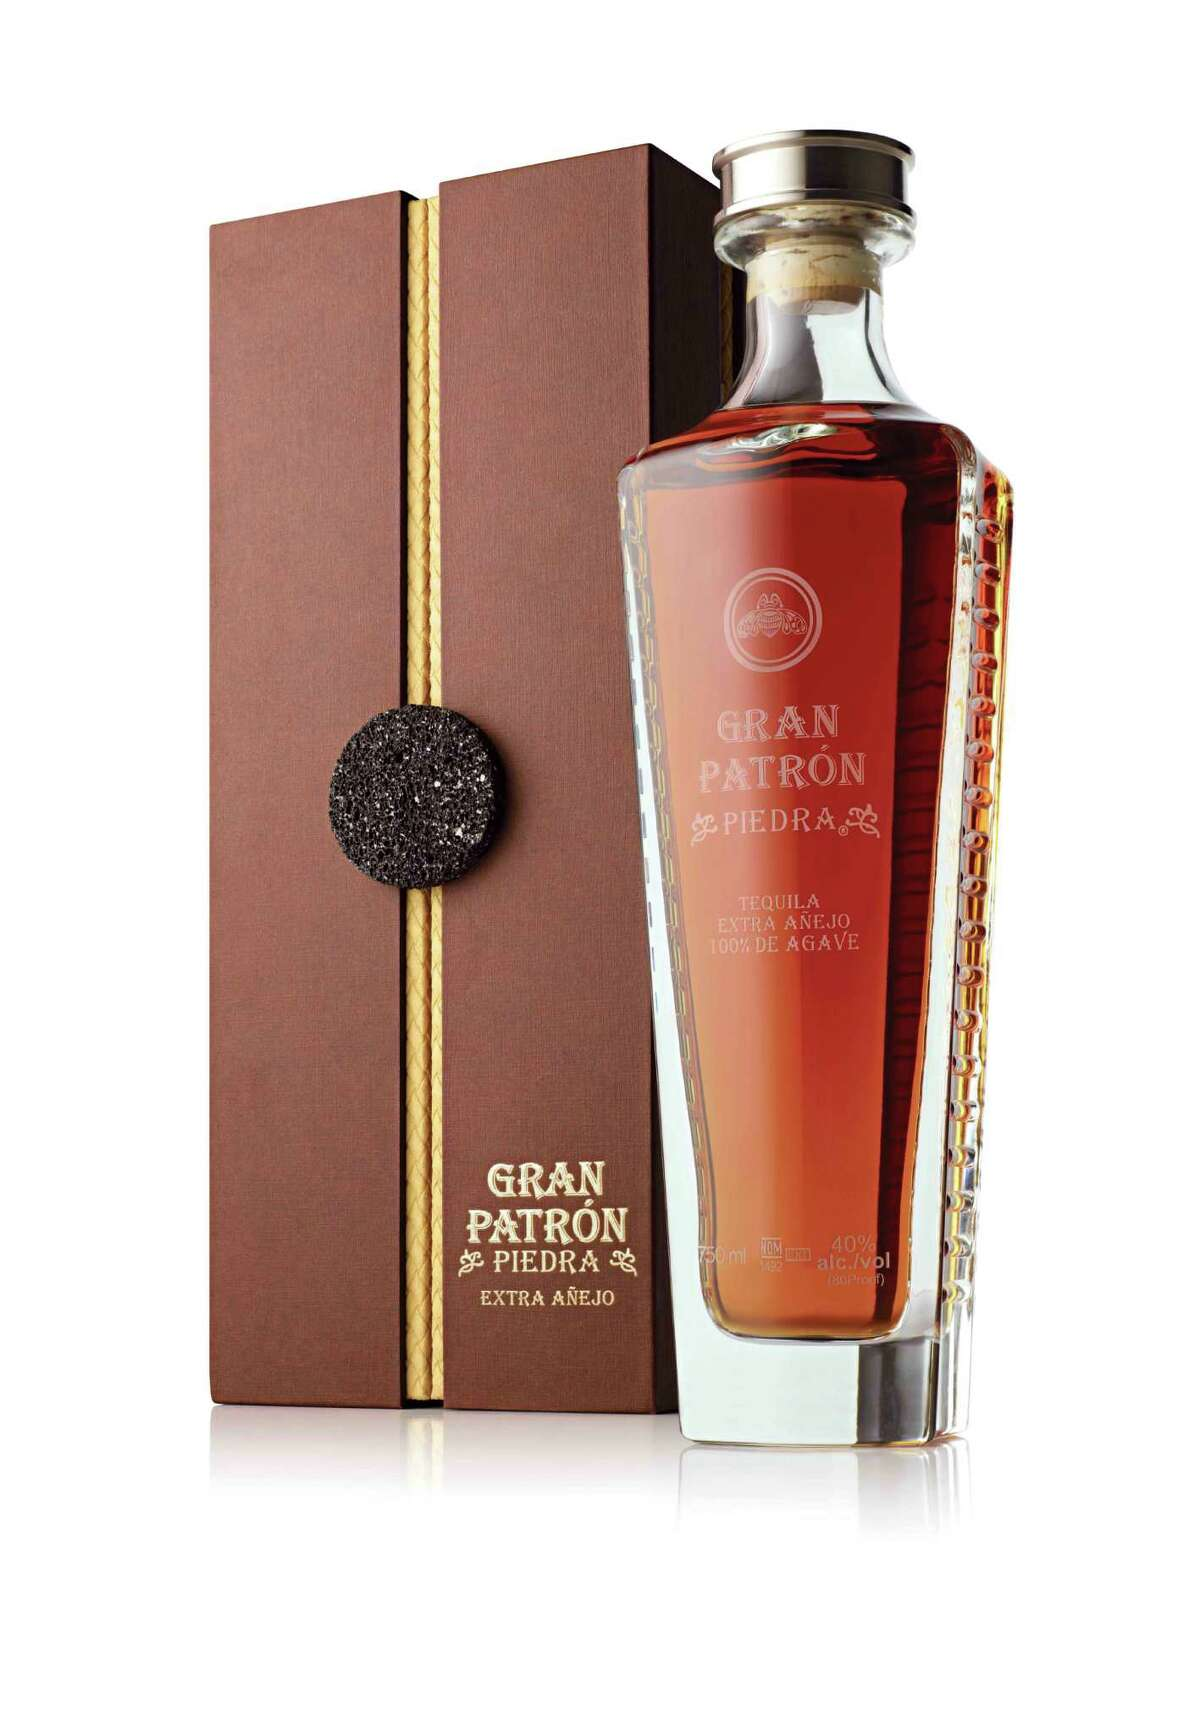 Patron Spirits has just released the limited-production Gran Patron Piedra, the brand s first extra anejo tequila. Aged for more than three years in new American and French oak barrels, the super elite tequila boasts a complex flavor profile with a distinct oak taste; $399.